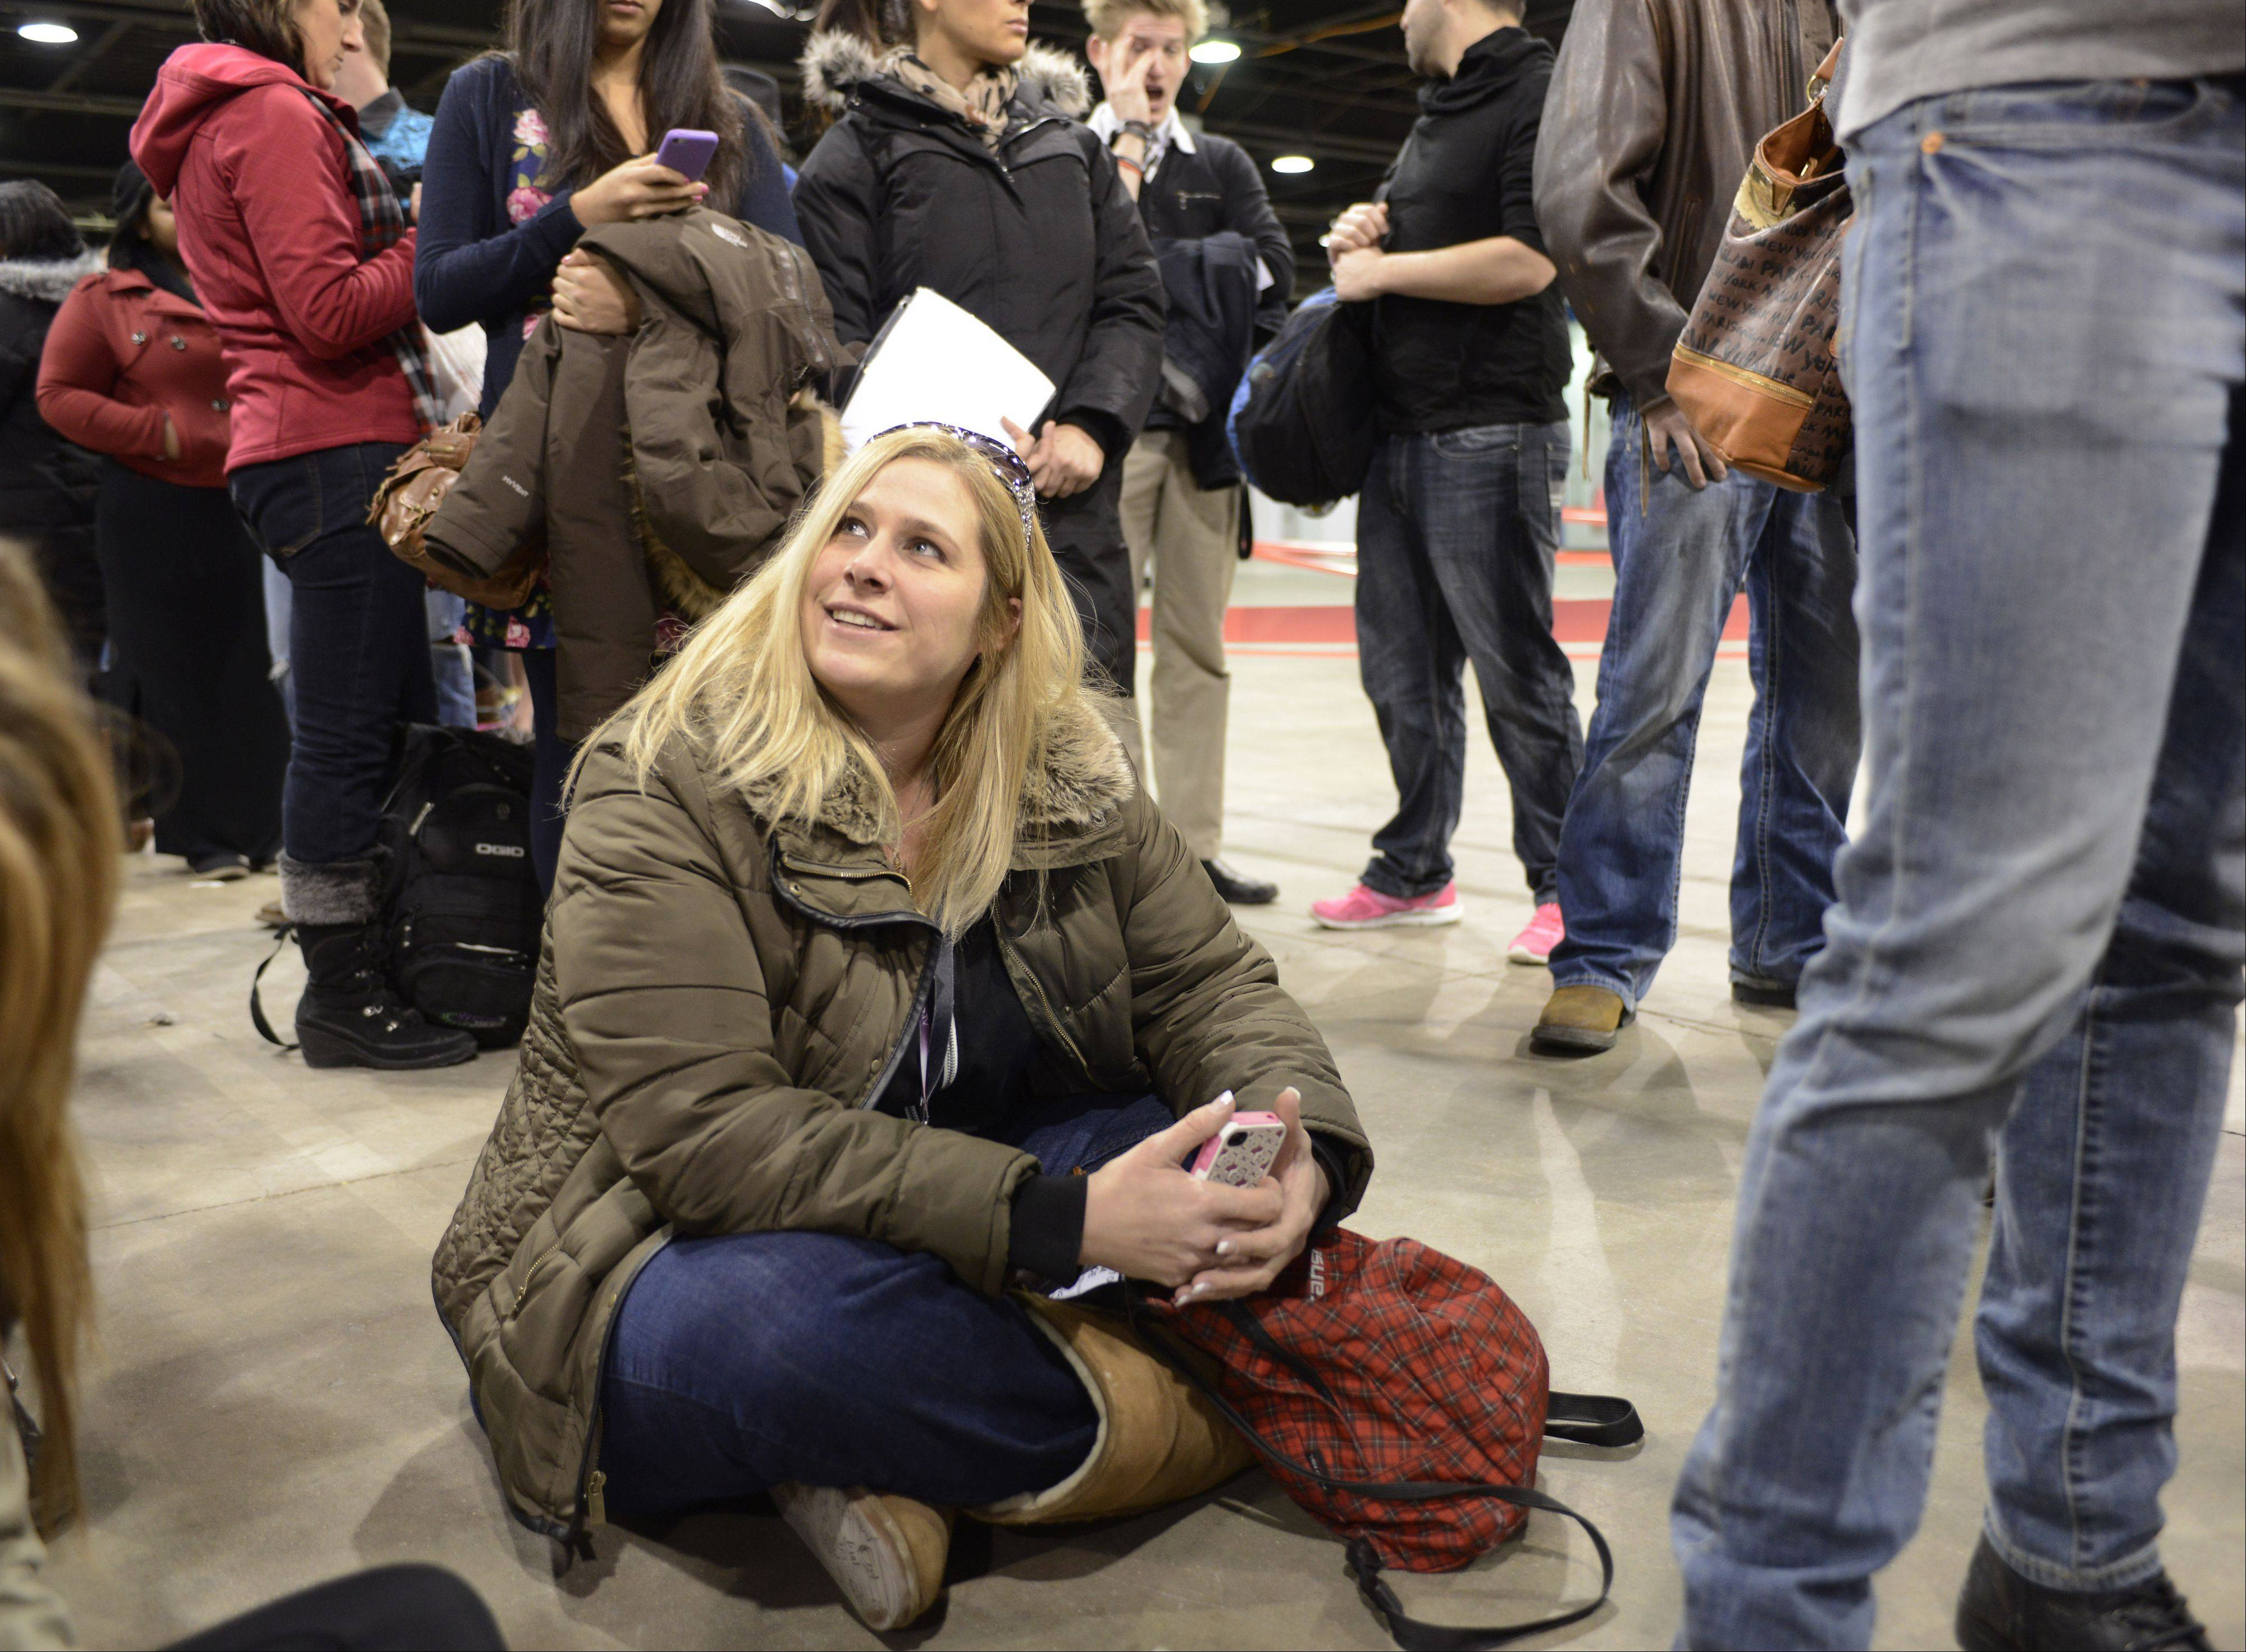 Kim Noe of Palatine waits in line to audition Sunday for the NBC television signing competition �The Voice� at the Stephens Convention Center in Rosemont. Hundreds of aspiring singers from across the suburbs traveled to Rosemont over the weekend to try out for the show.